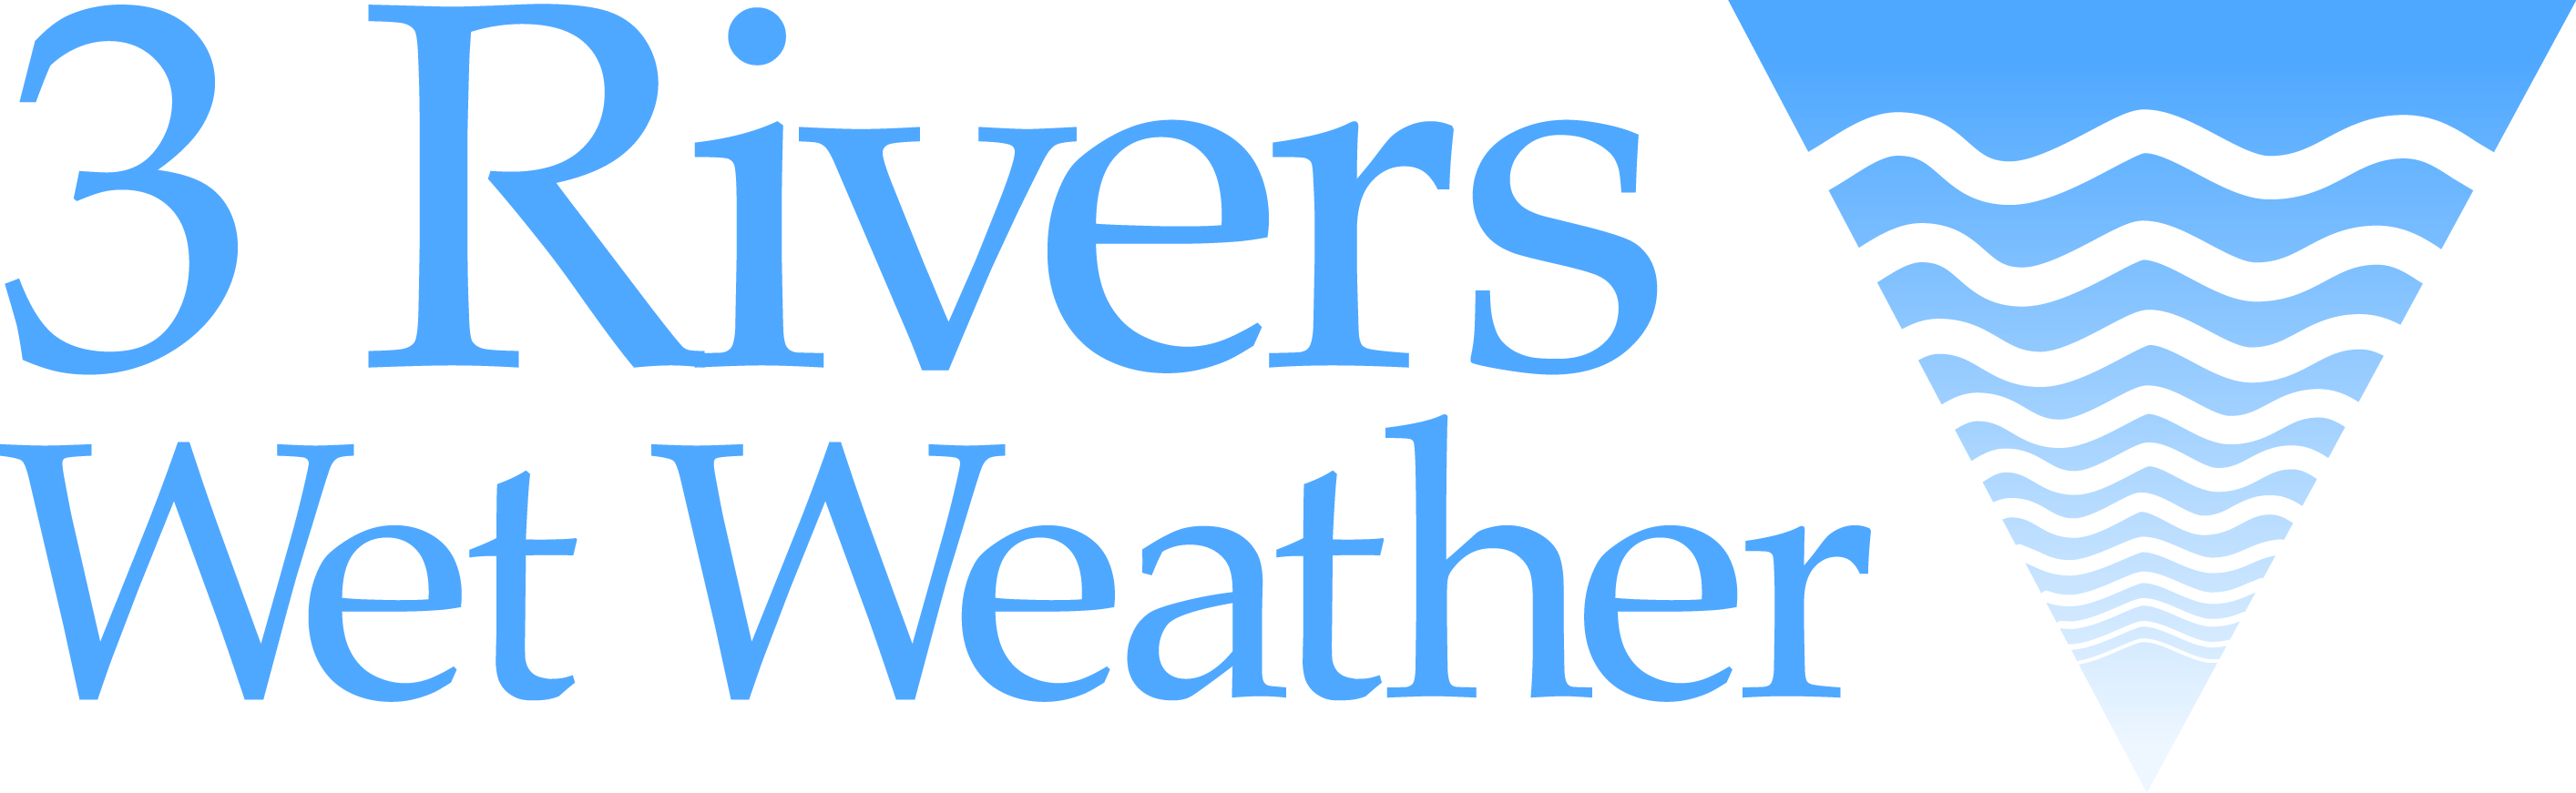 3 Rivers Wet Weather Sewer Conference @ Monroeville Convention Center | Monroeville | Pennsylvania | United States